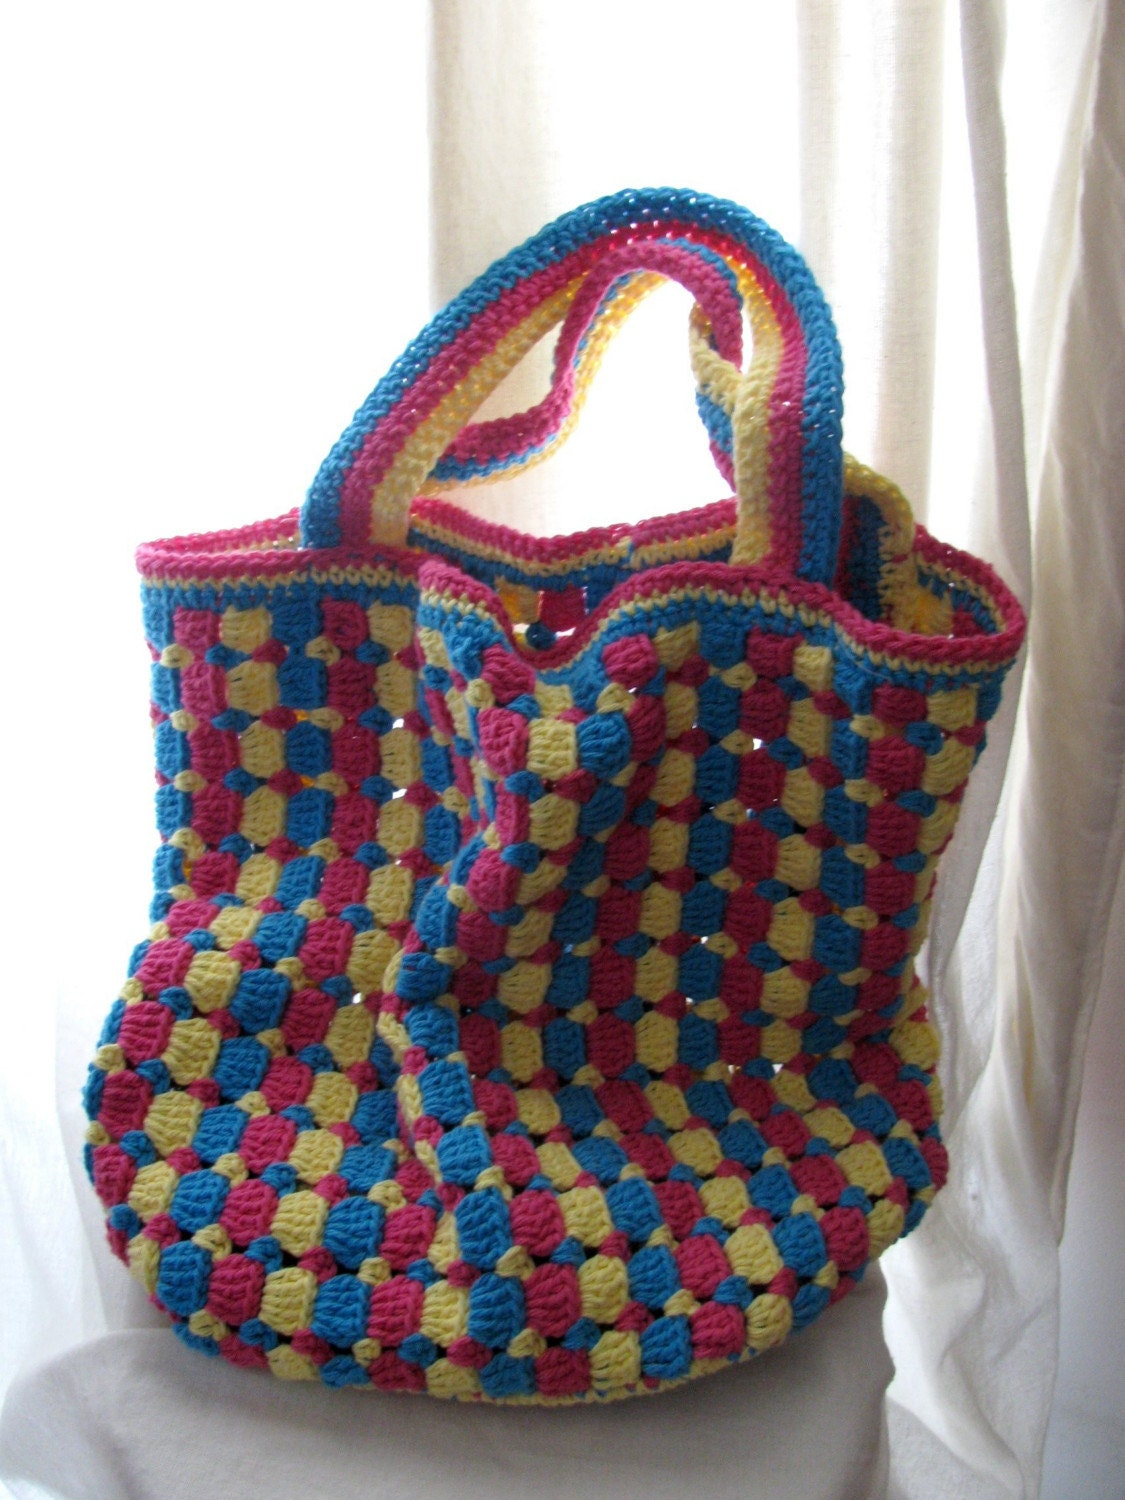 Crochet Tote Pattern : BAG CROCHET TOTE - Crochet - Learn How to Crochet